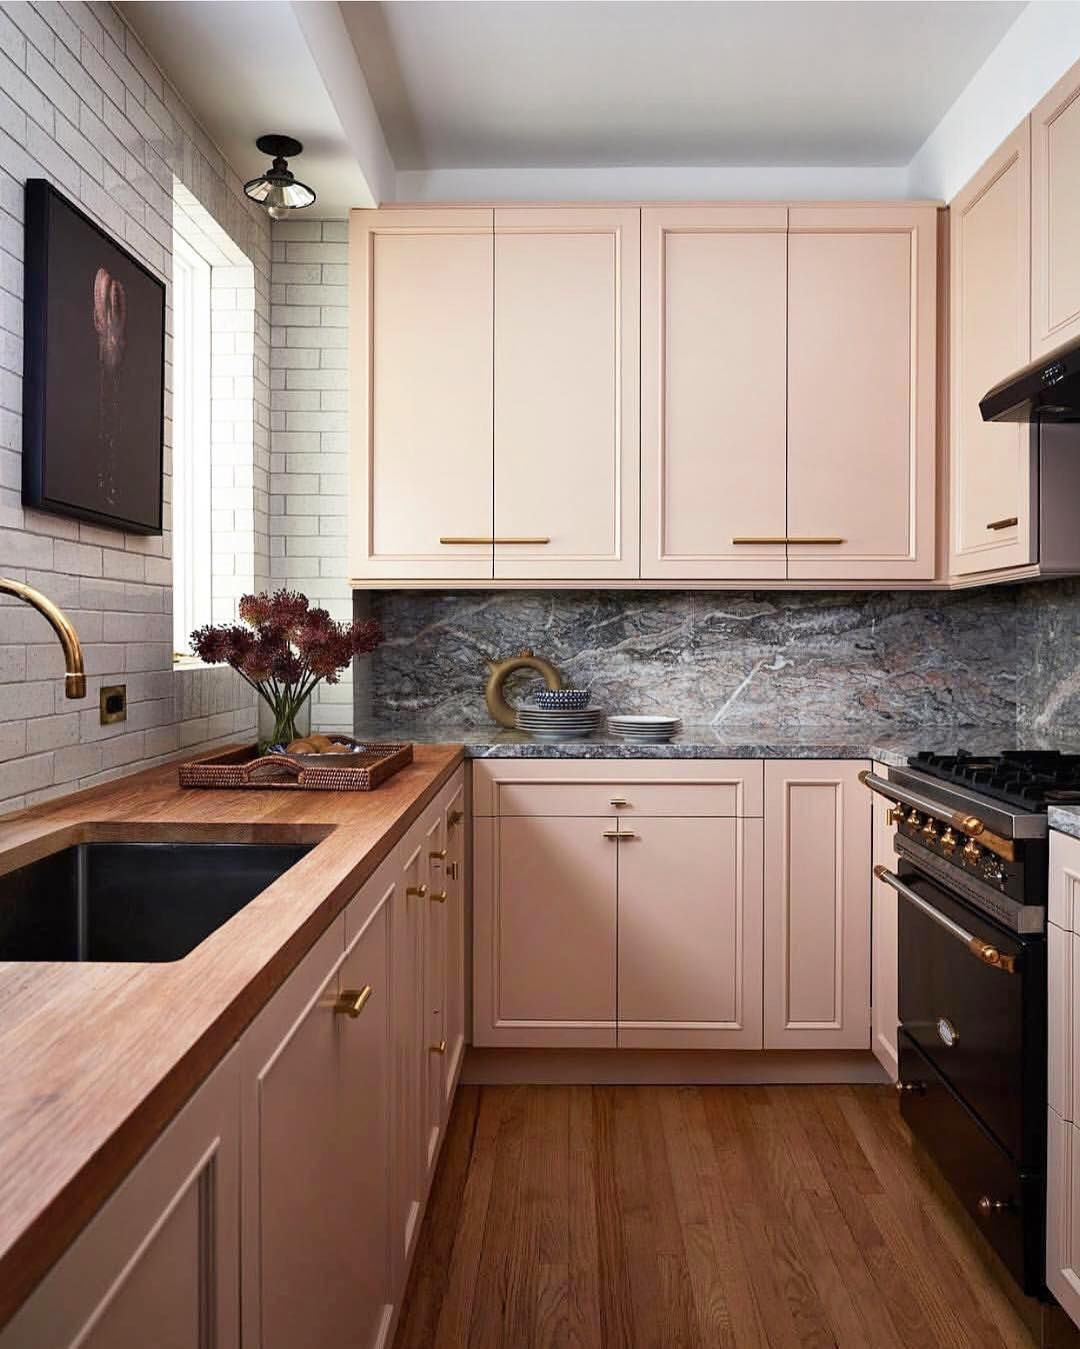 Stunning Kitchen Dusty Rose Cabinets Top Kitchen Designs Interior Design Kitchen Kitchen Design Trends